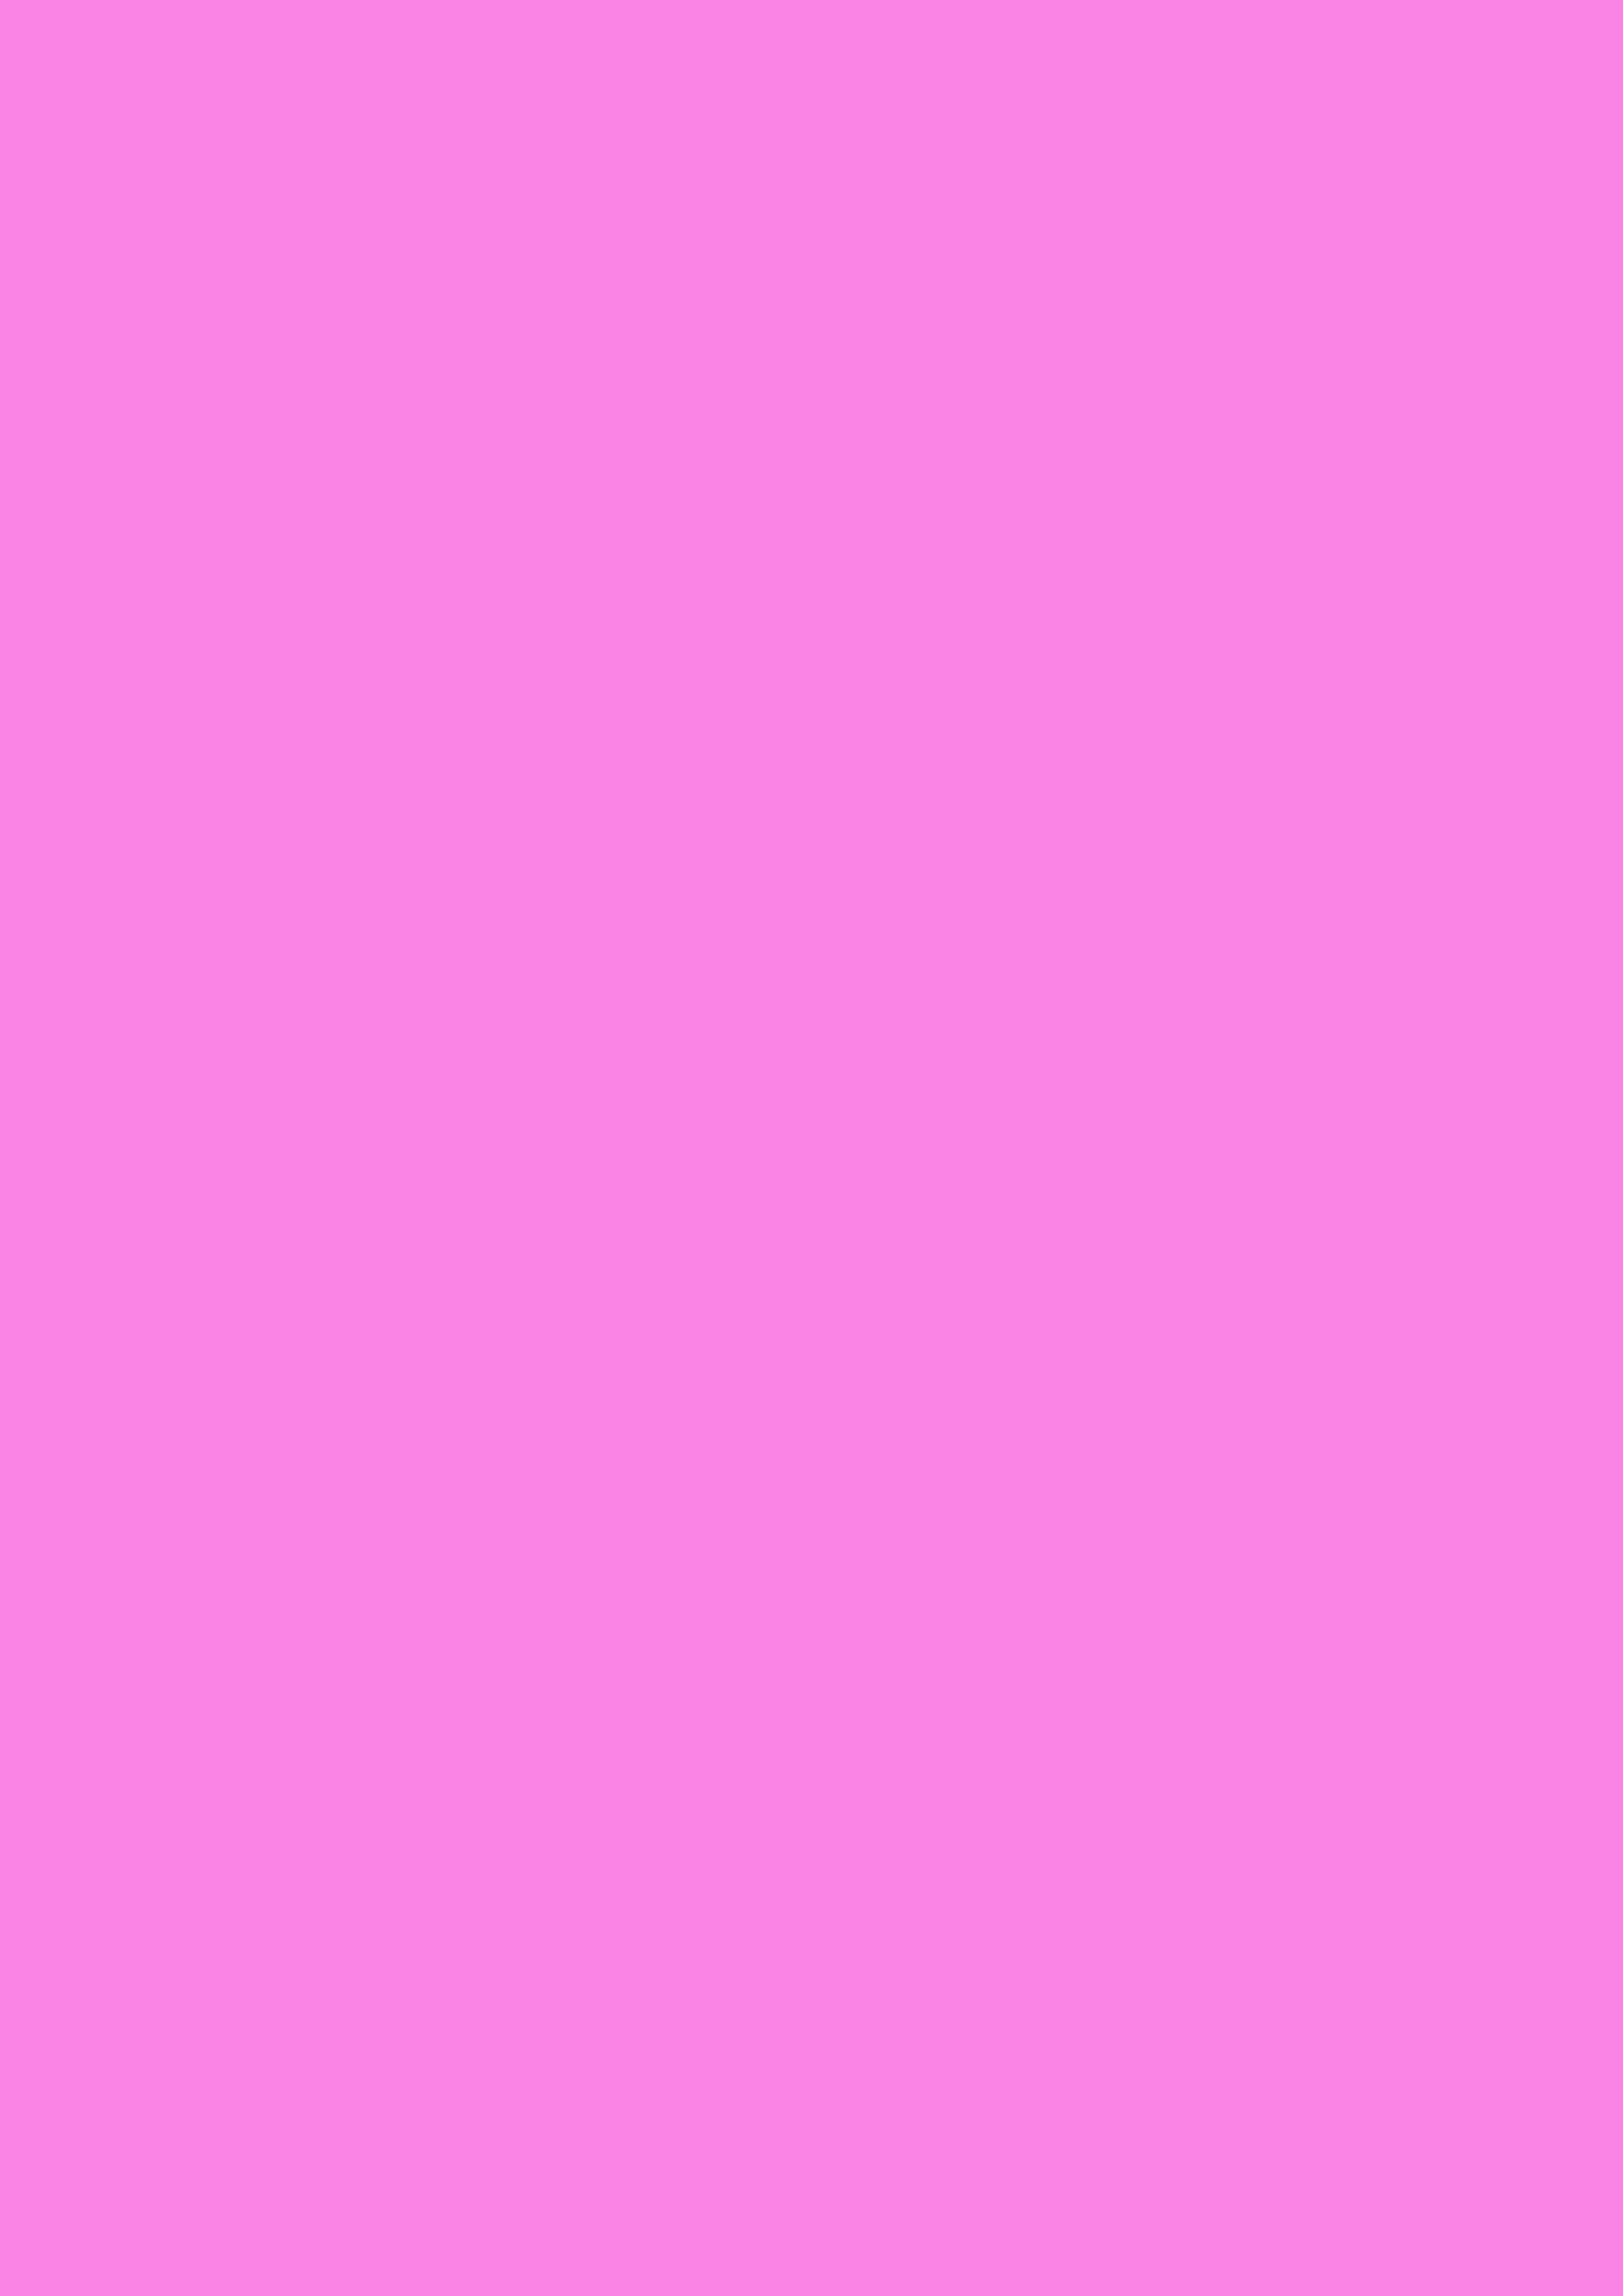 2480x3508 Pale Magenta Solid Color Background